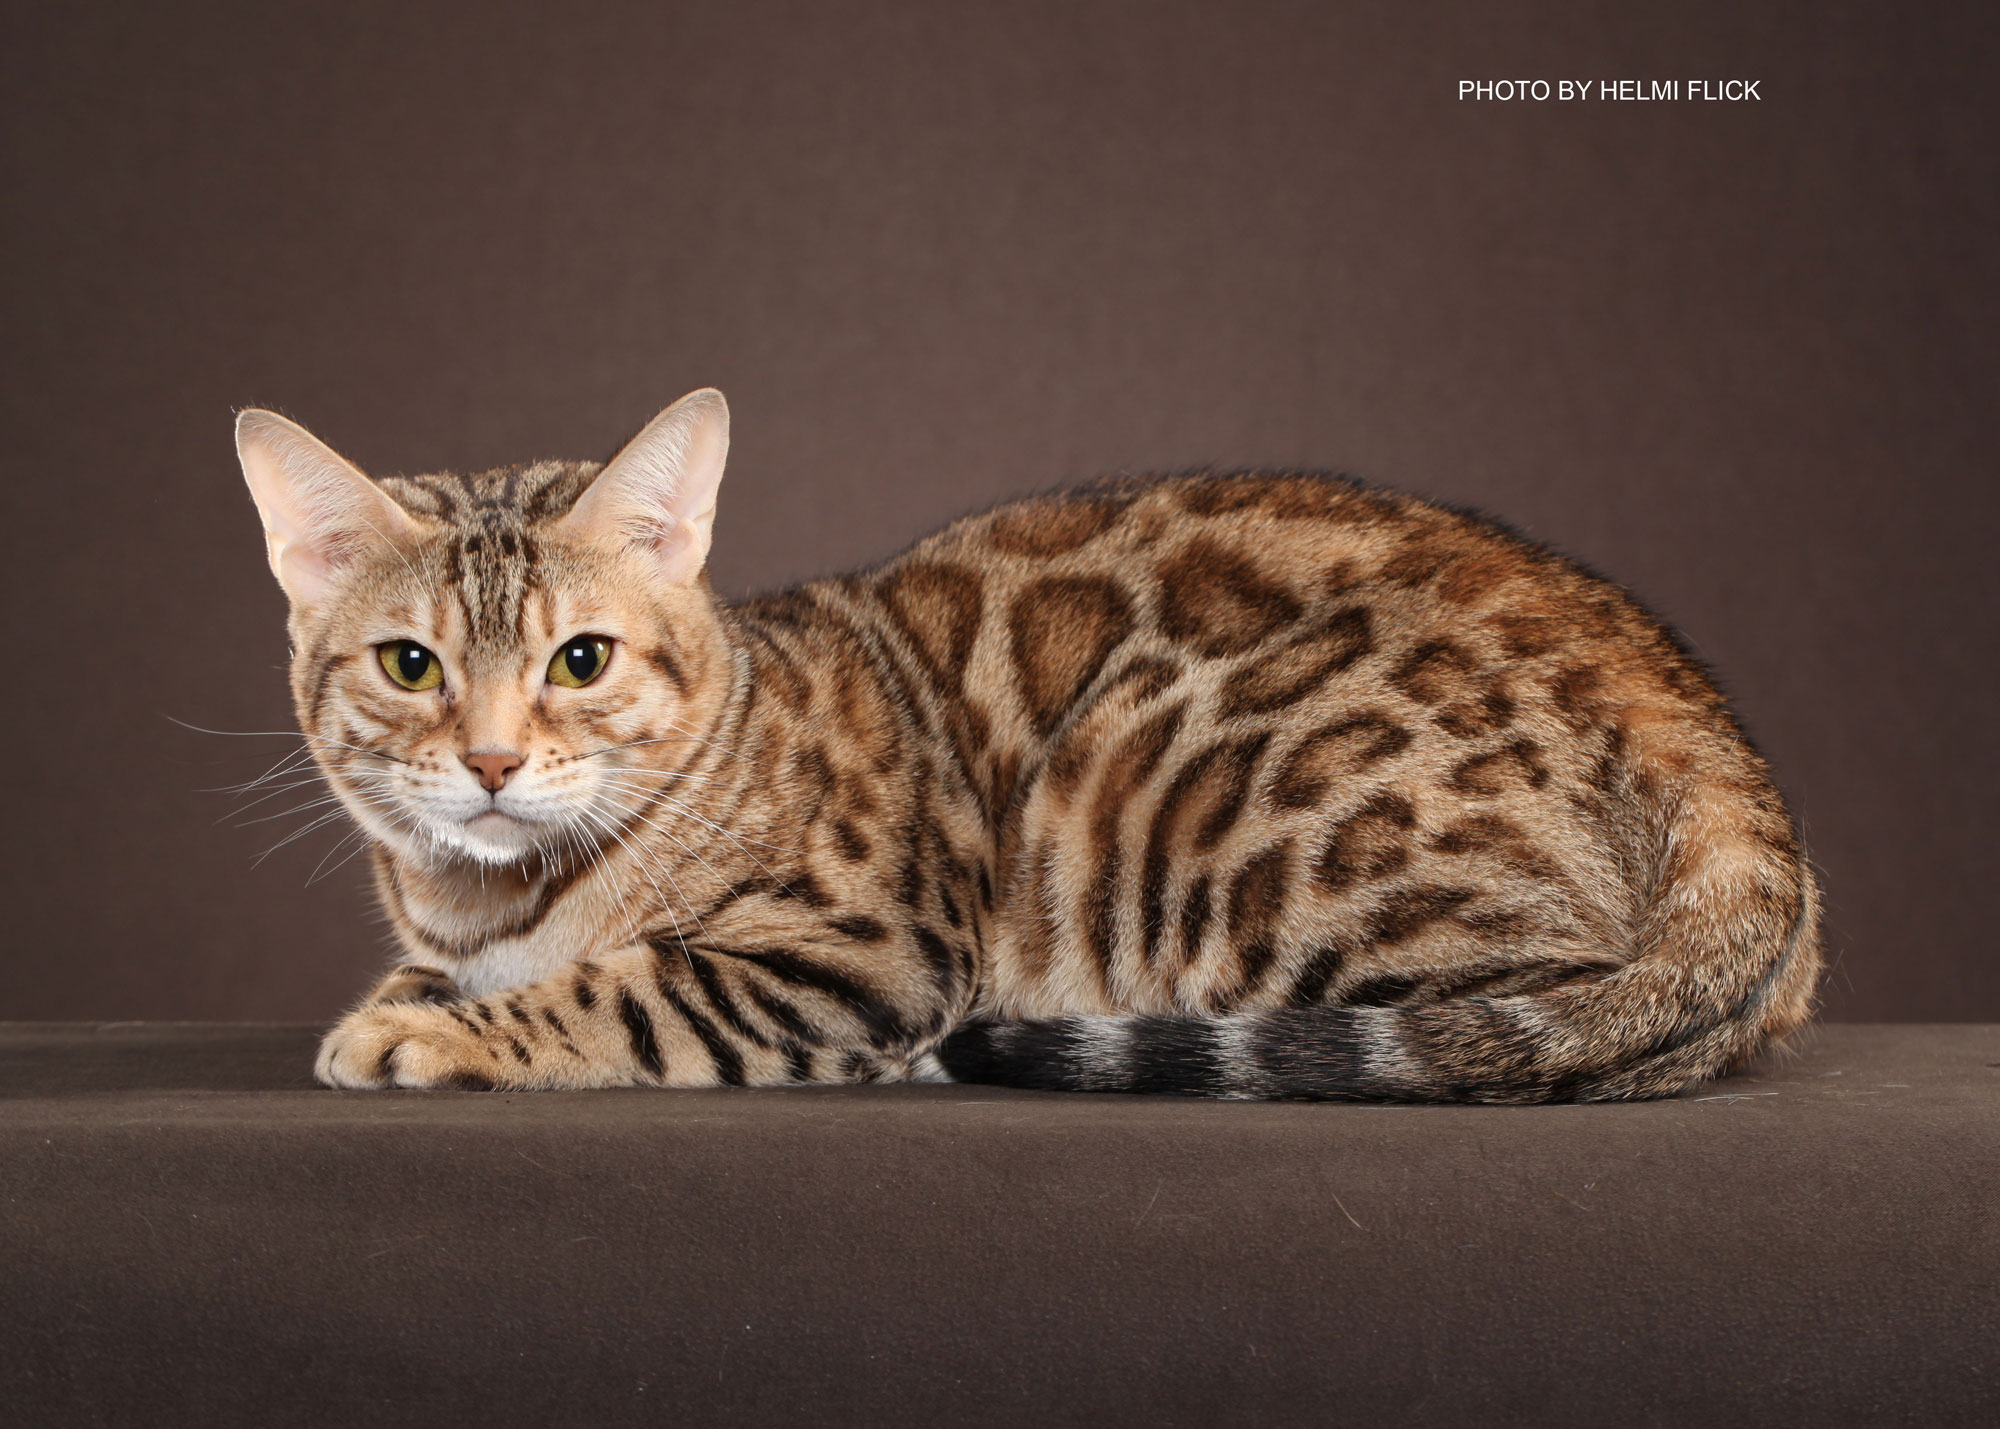 Bengal cats or kittens for sale – Popular breeds of cats photo blog